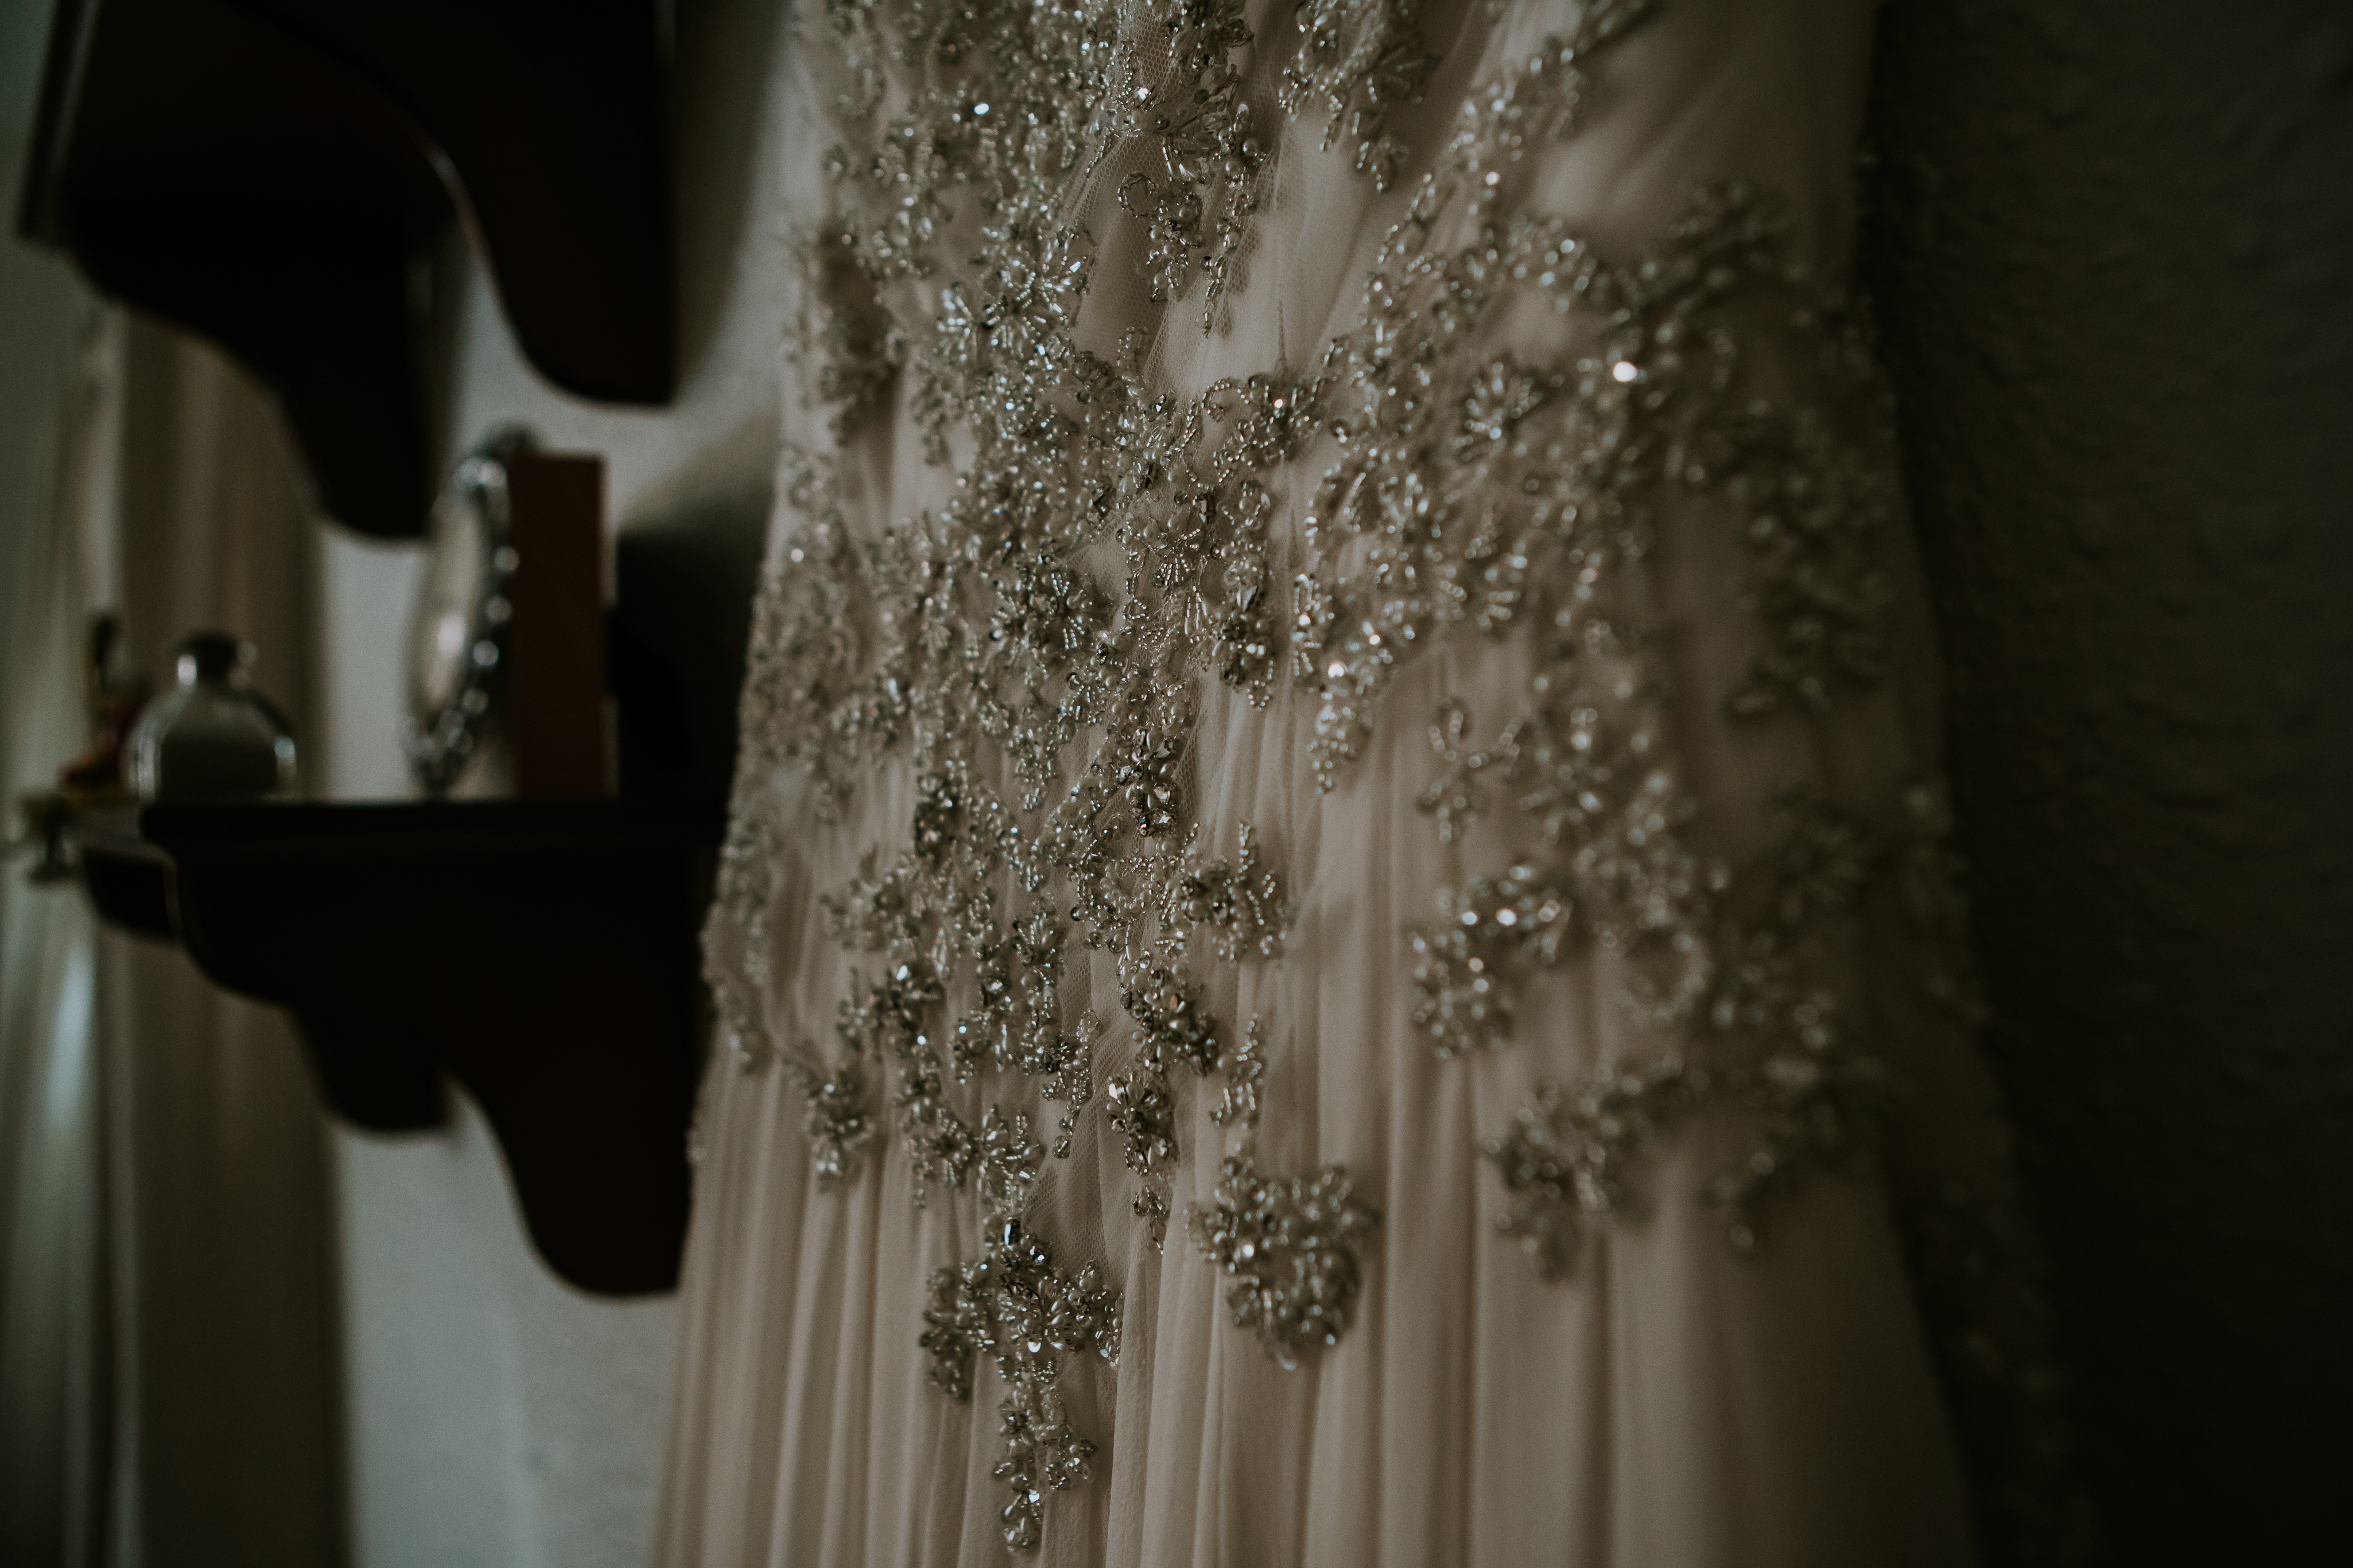 Magically Beaded Soft Silk Chiffon Wedding Dress by Amare Couture